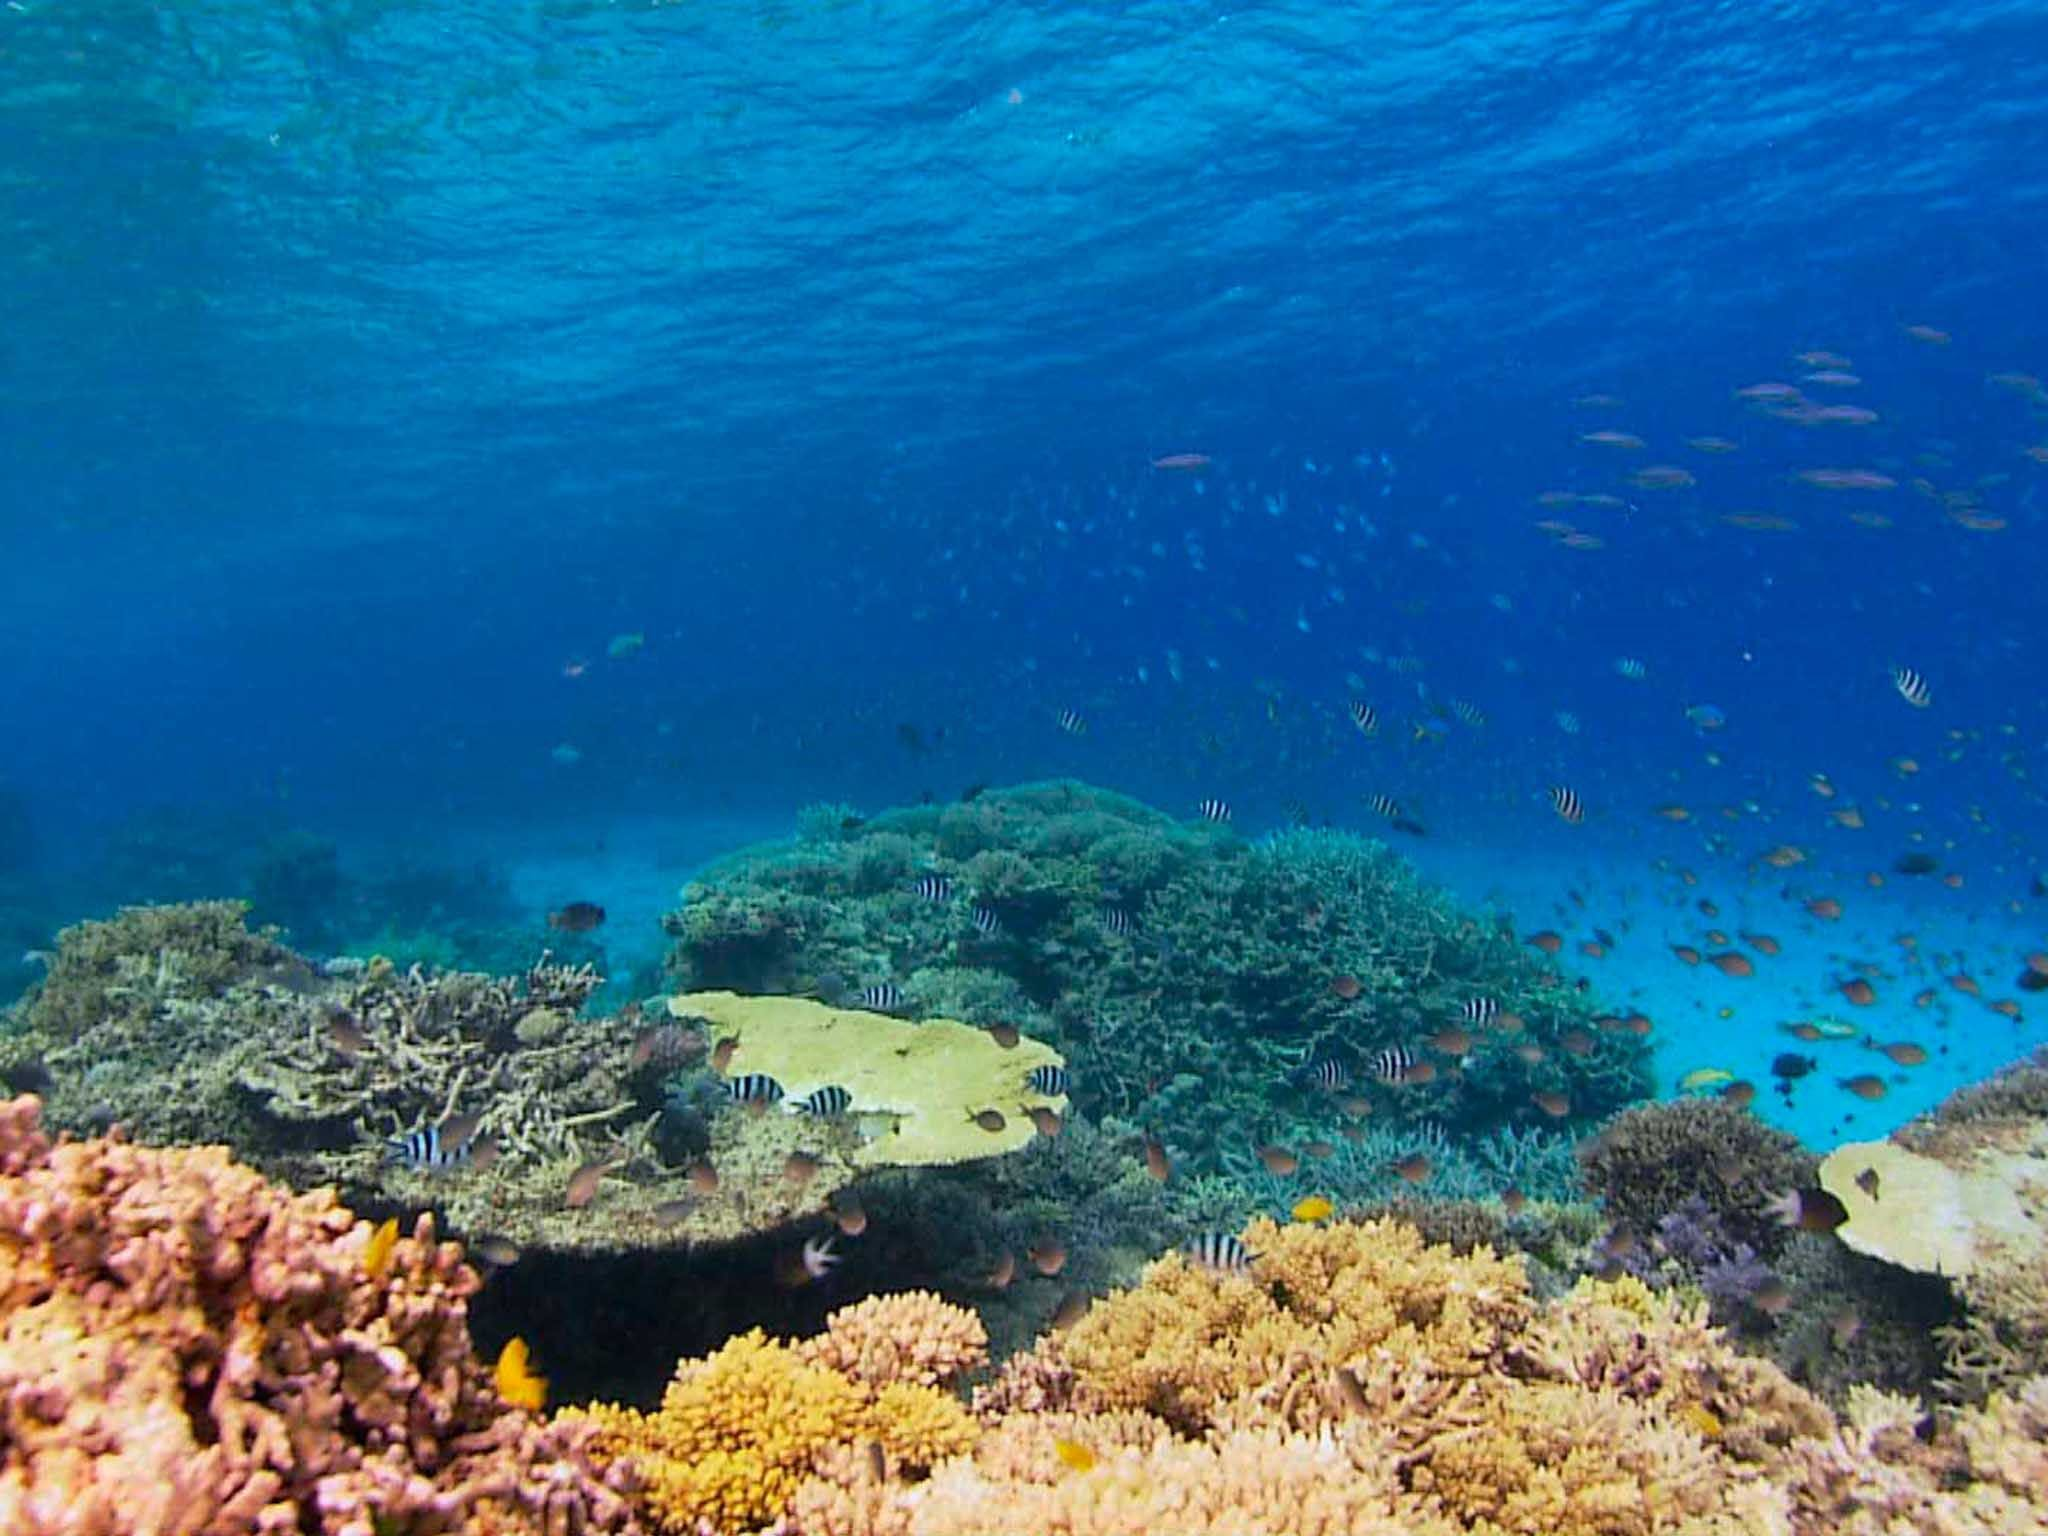 Recovery of the Great Barrier Reef - Accommodation Cairns